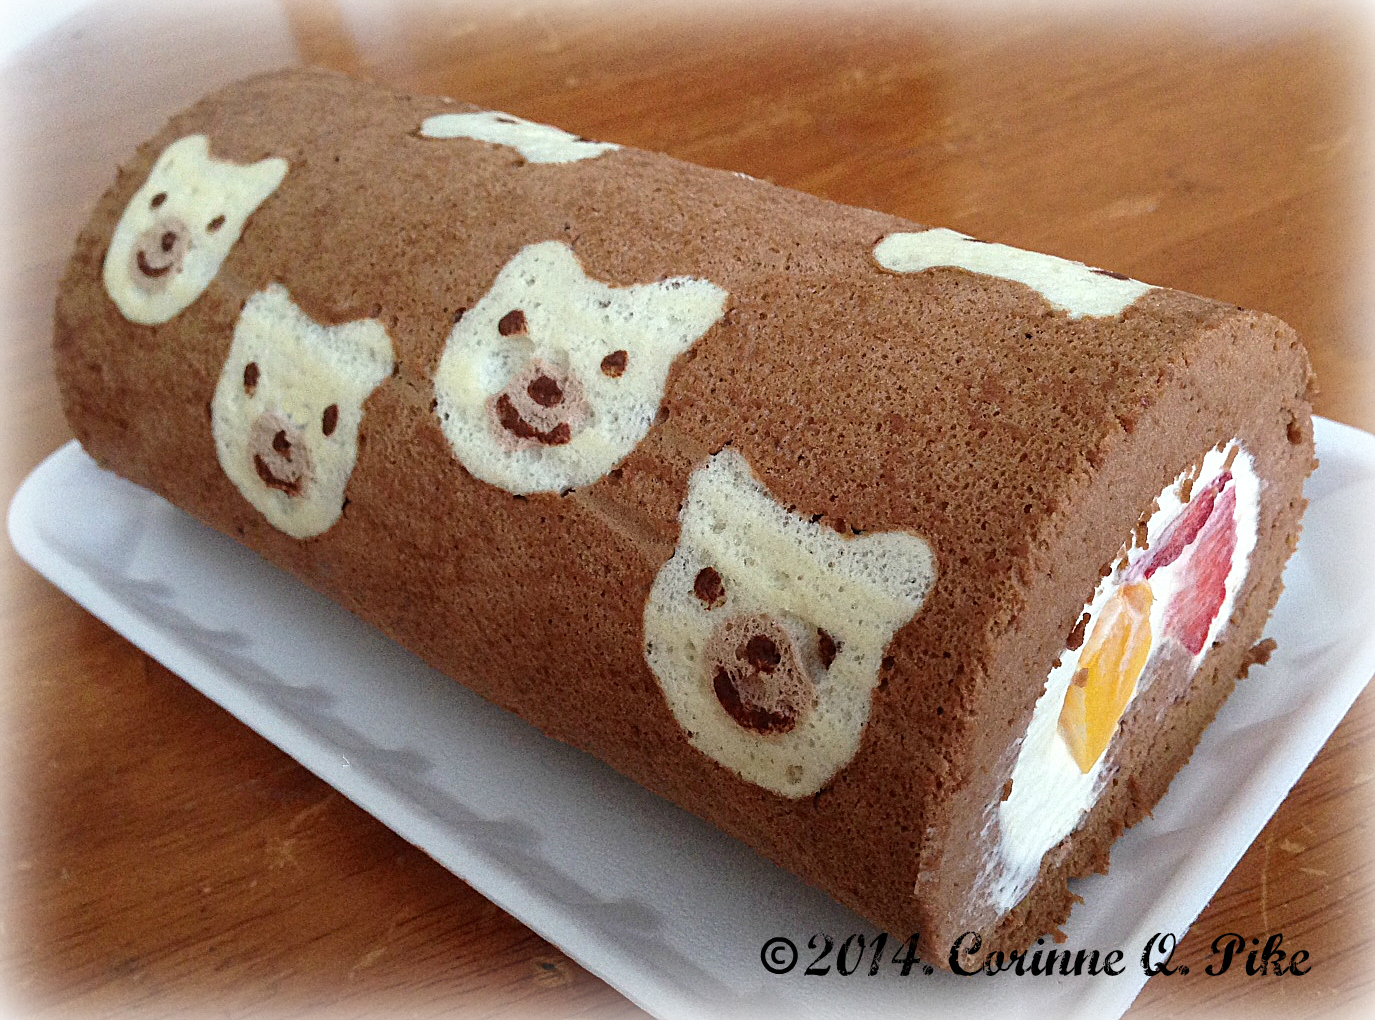 Teddy Bear Deco Roll Chocolate Flavoured Cake With Whipped Cream Mangoes And Strawberries